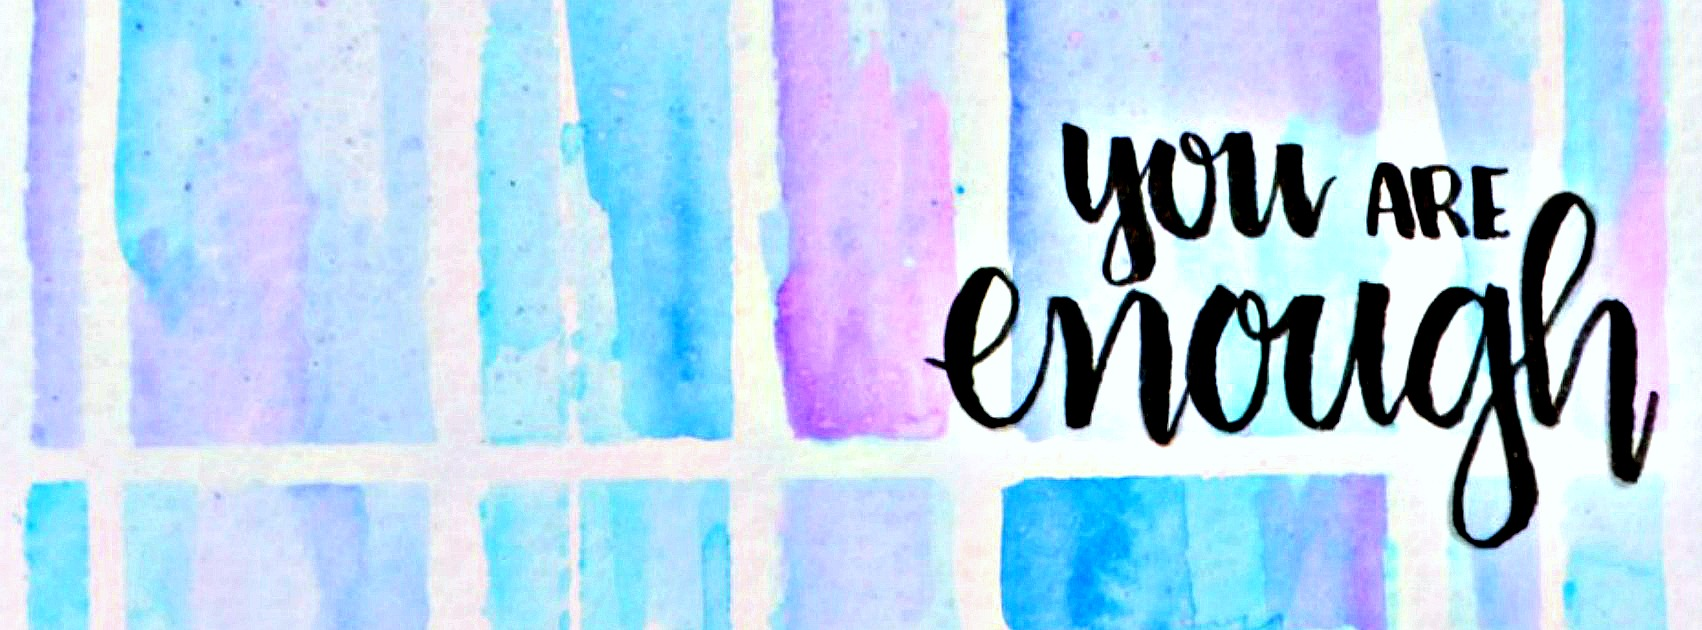 Free Watercolor Phone Wallpaper Amp Facebook Cover Amy